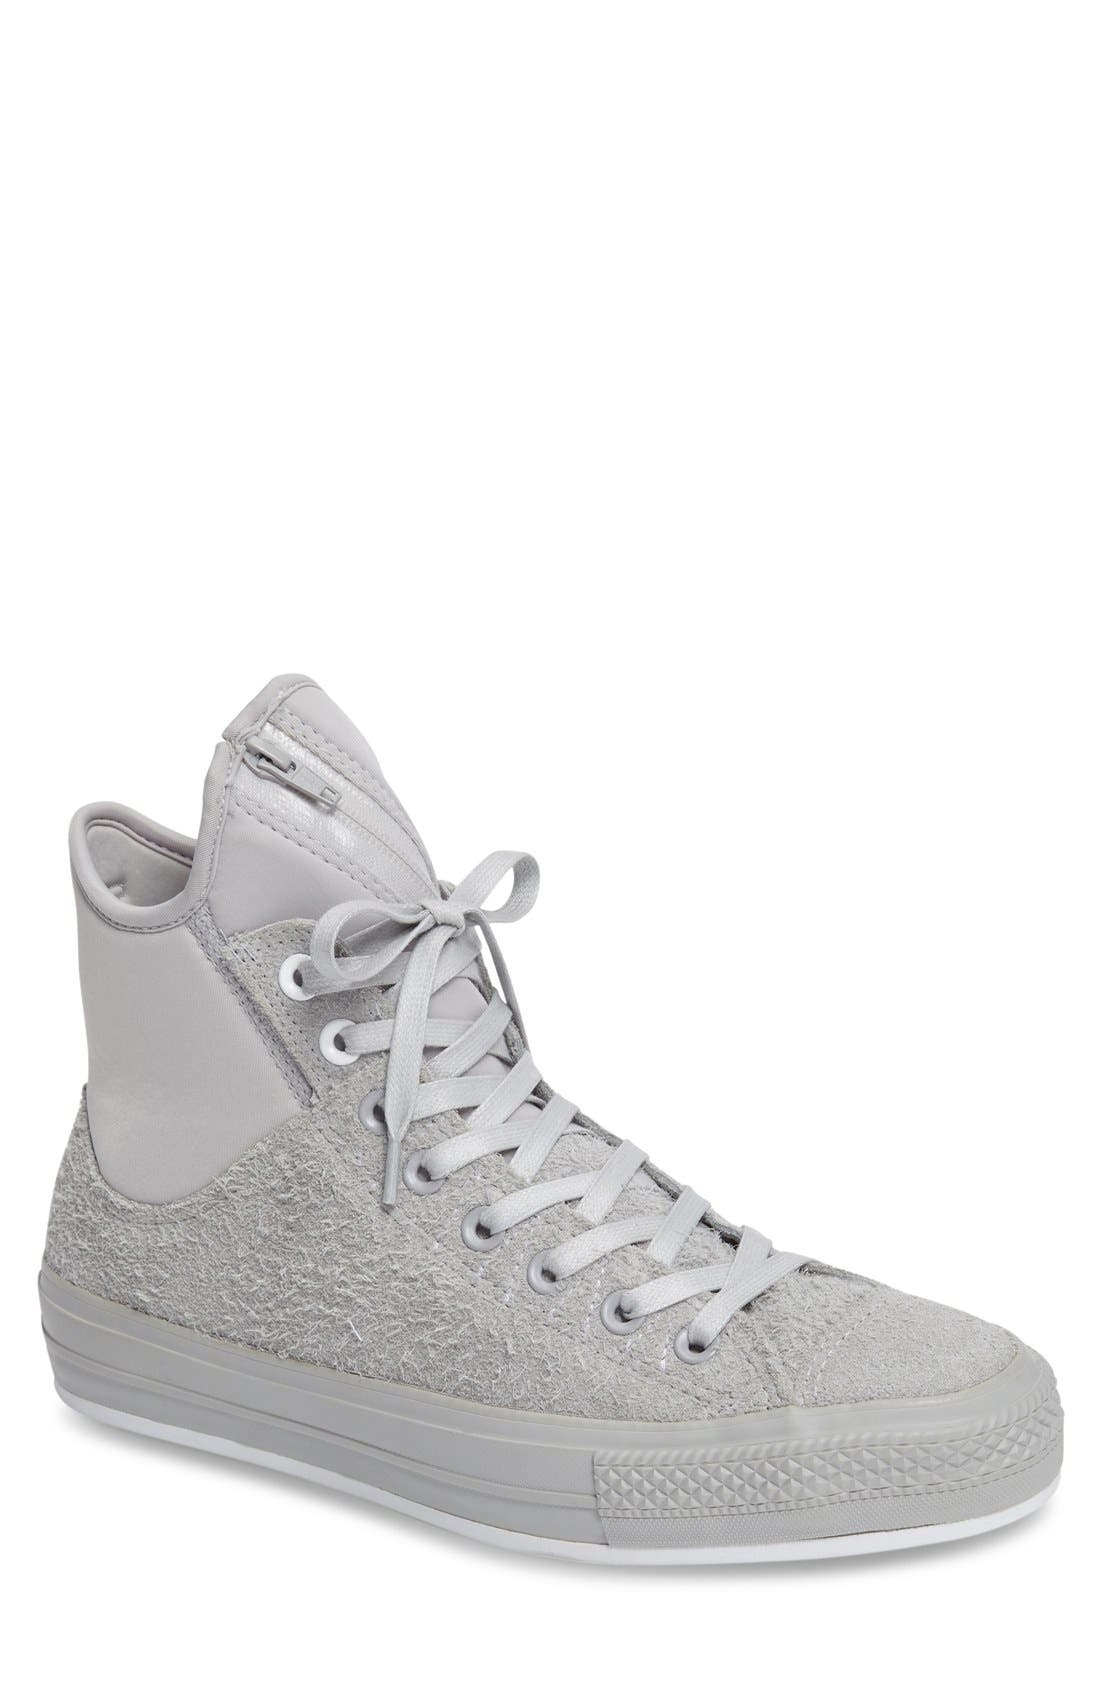 Chuck Taylor<sup>®</sup> All Star<sup>®</sup> MA-1 SE High Top Sneaker, Main, color, 095